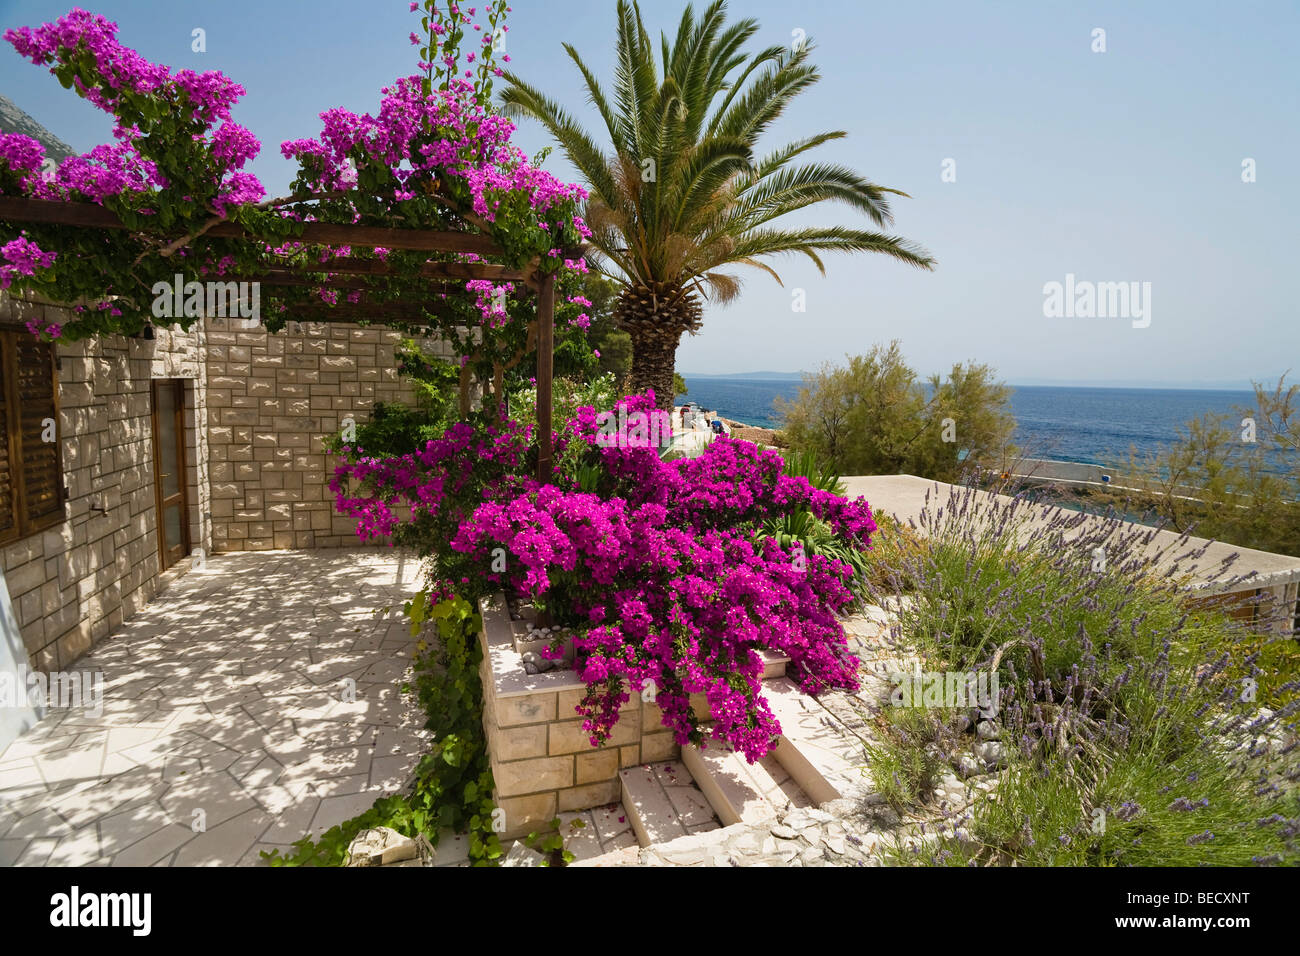 holiday flat with bougainvillea on the coast zavala hvar island stock photo royalty free. Black Bedroom Furniture Sets. Home Design Ideas